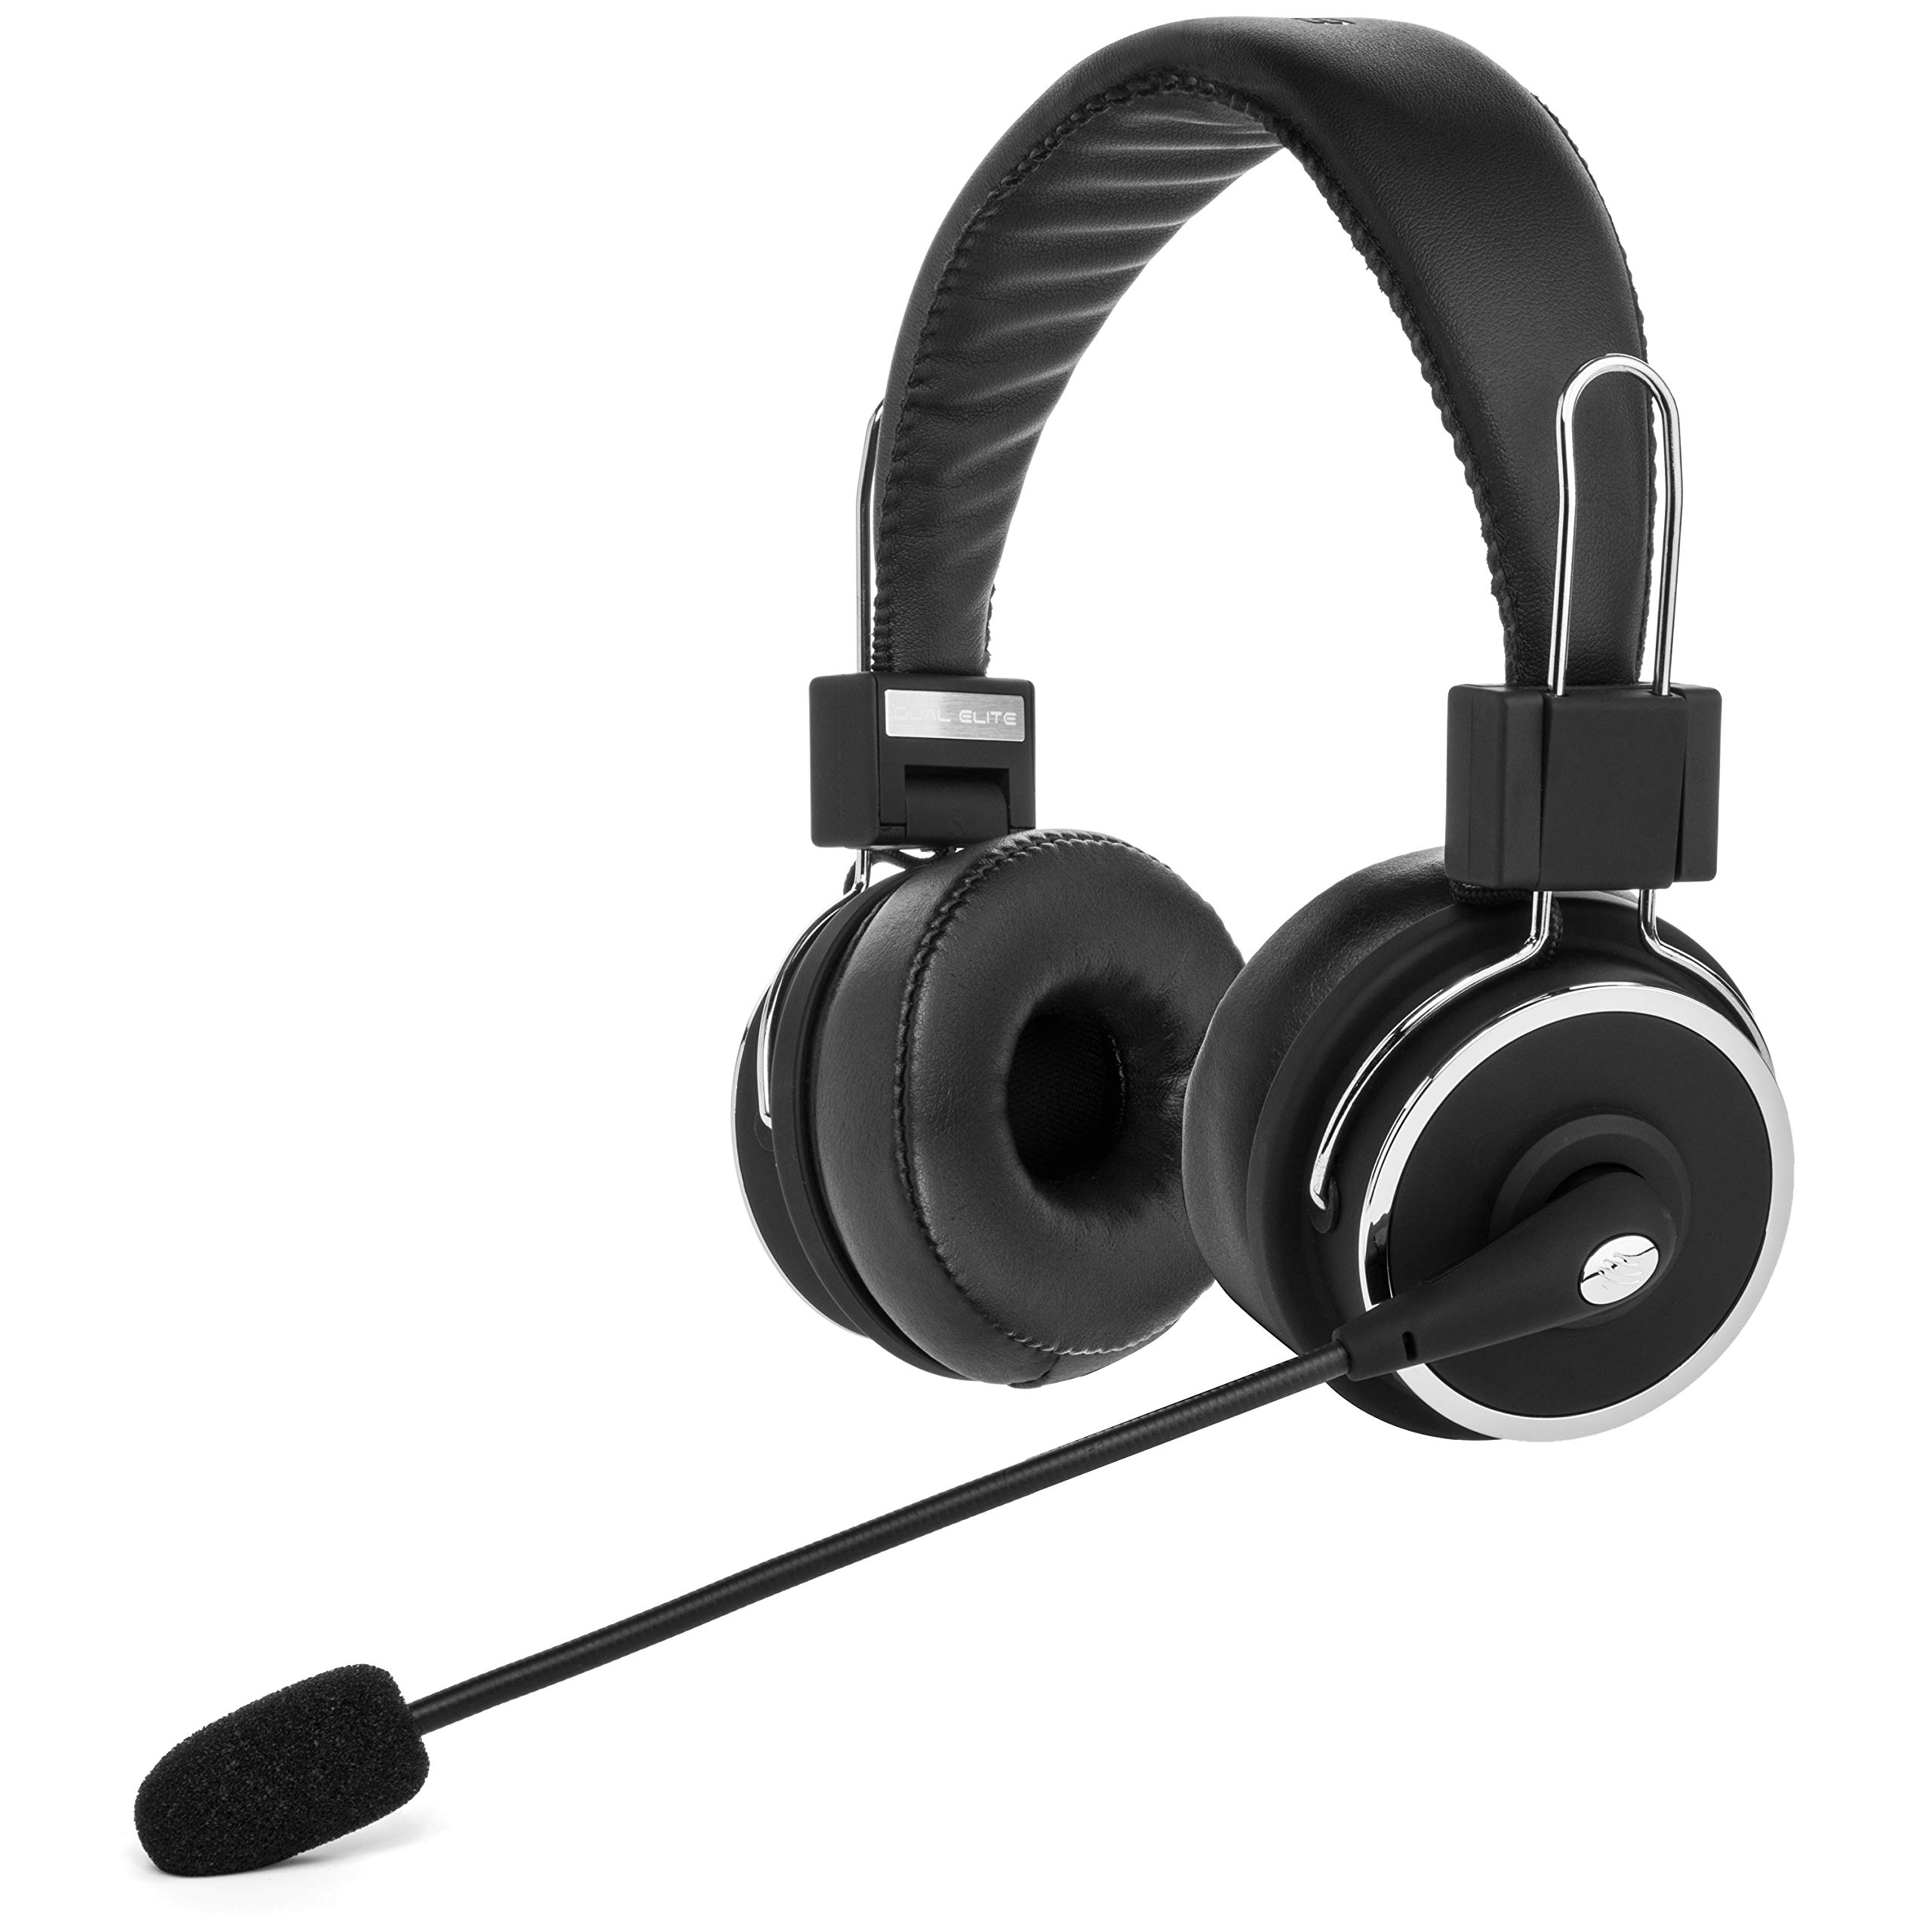 Blue Tiger Dual Elite Wireless Bluetooth Headset - Premium Noise Cancelling Headphones with No Wires - Ideal Driving, Gaming and Music Accessories - 50 Hour Talk Time - Black by Blue Tiger